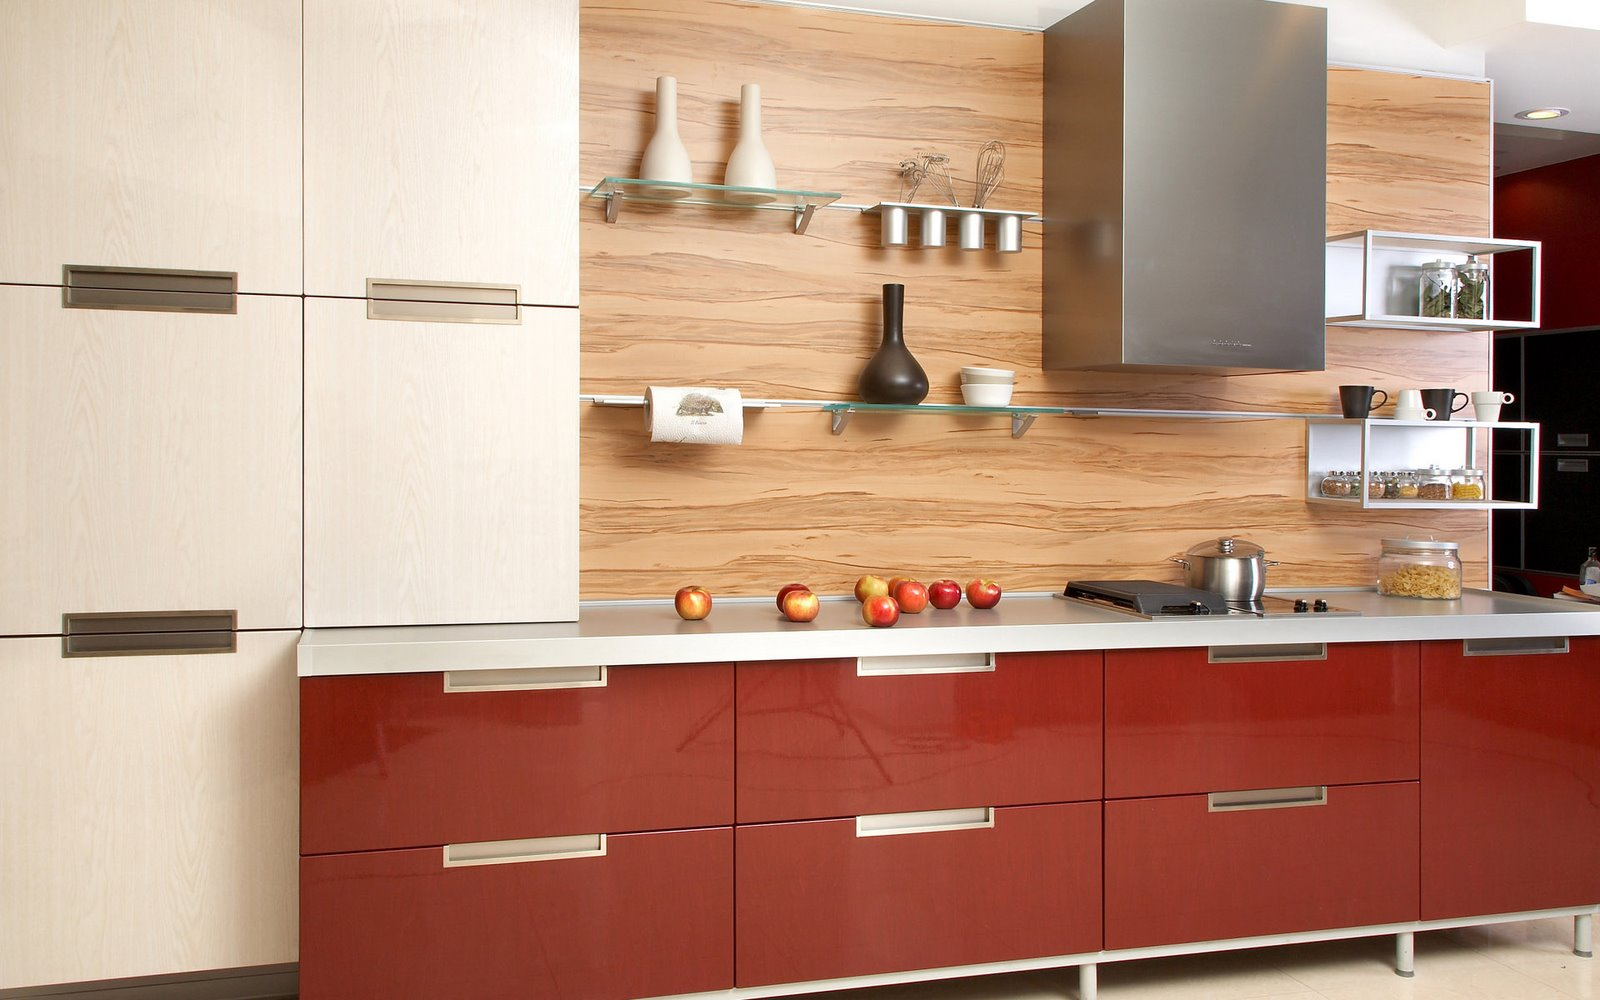 Modern wood kitchen design dream kitchens pinterest for Kitchen furniture design